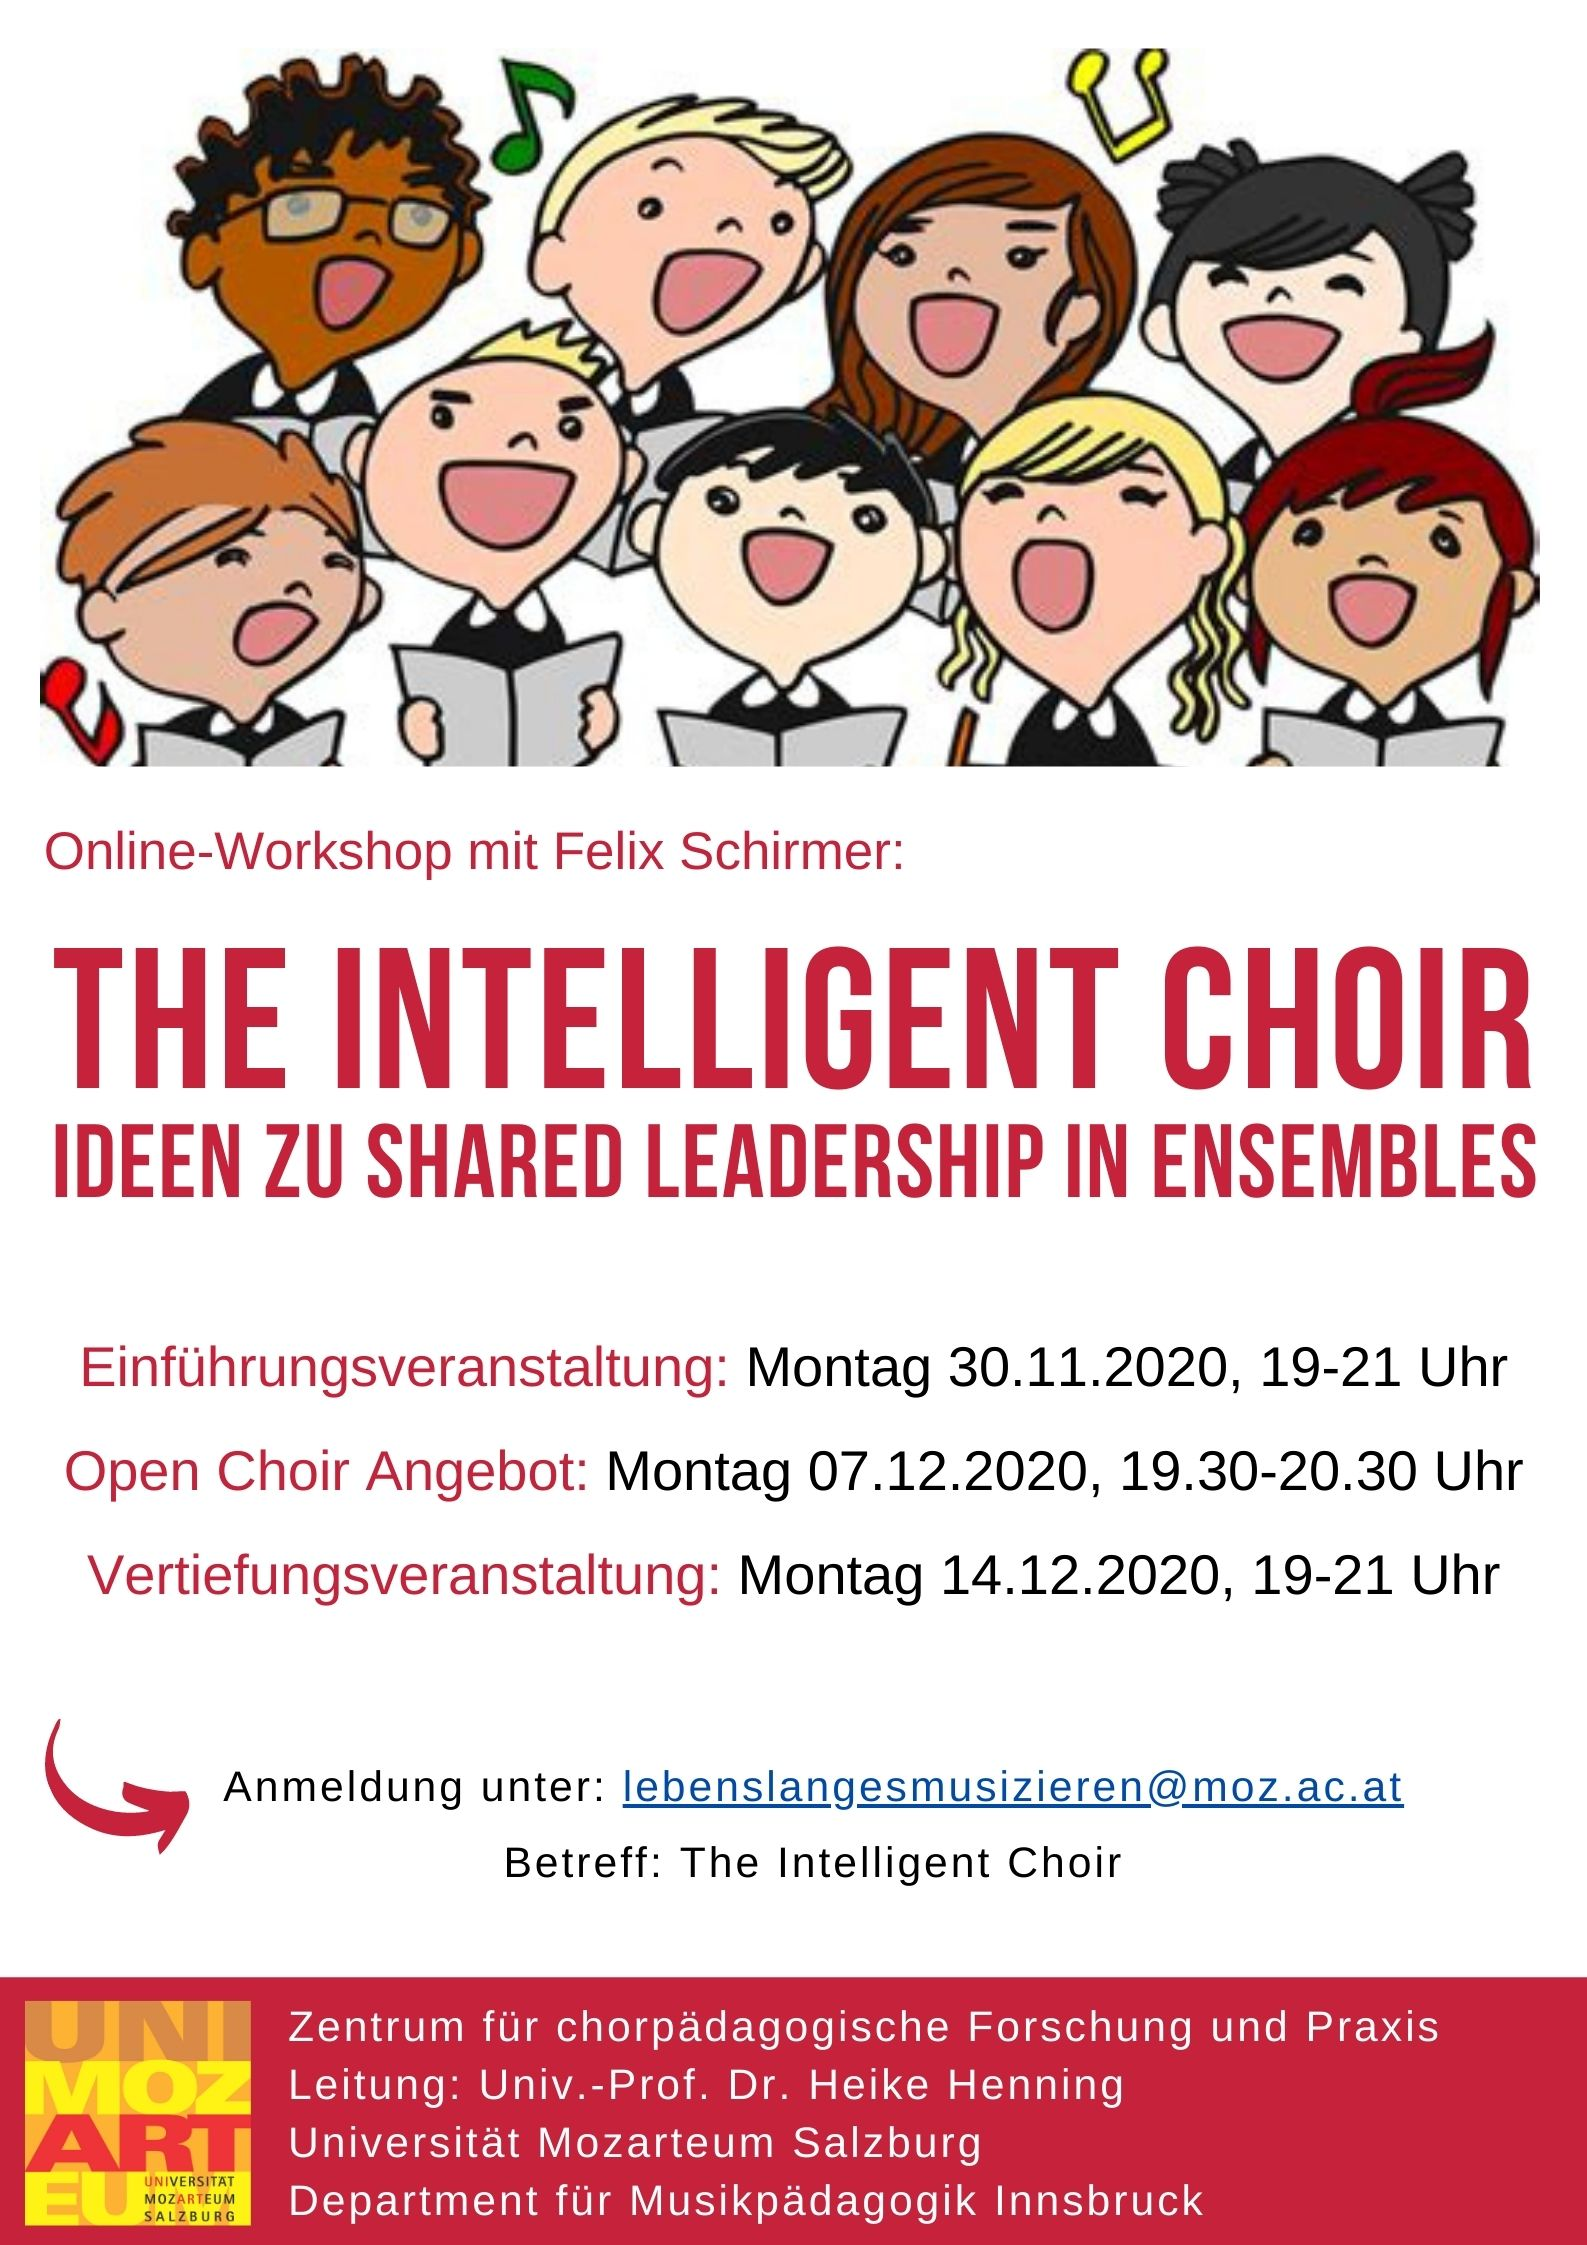 The Intelligent Choir